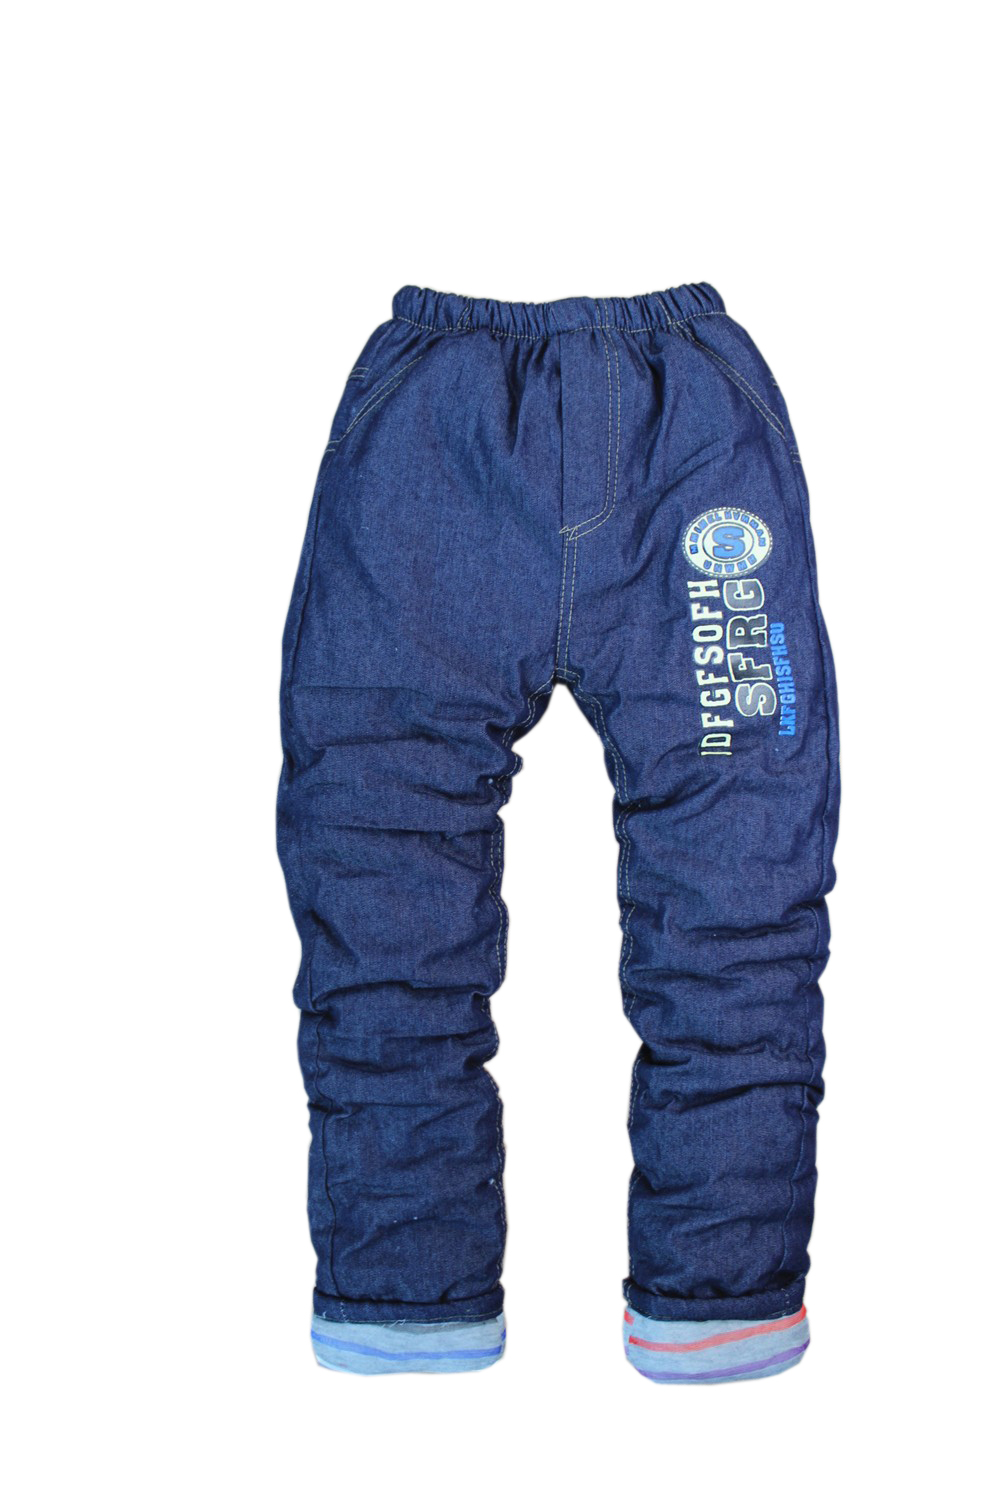 2015 fashion children pants high quality thick winter warm boys jeans kids trousers size 4Y-11Y retail(China (Mainland))